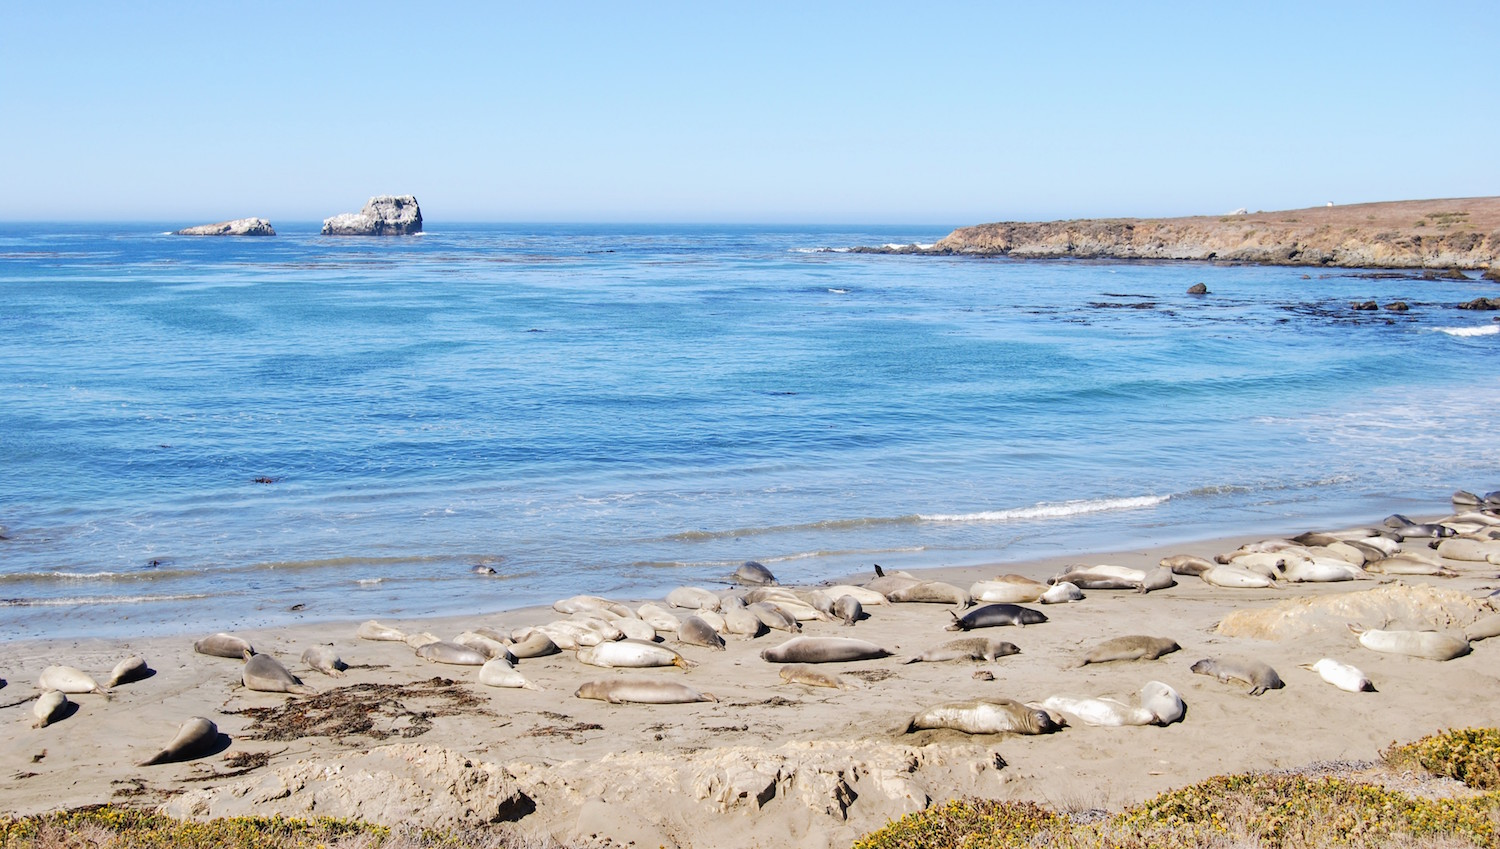 Elepahnt seal Overlook, California, San Simeon.jpg